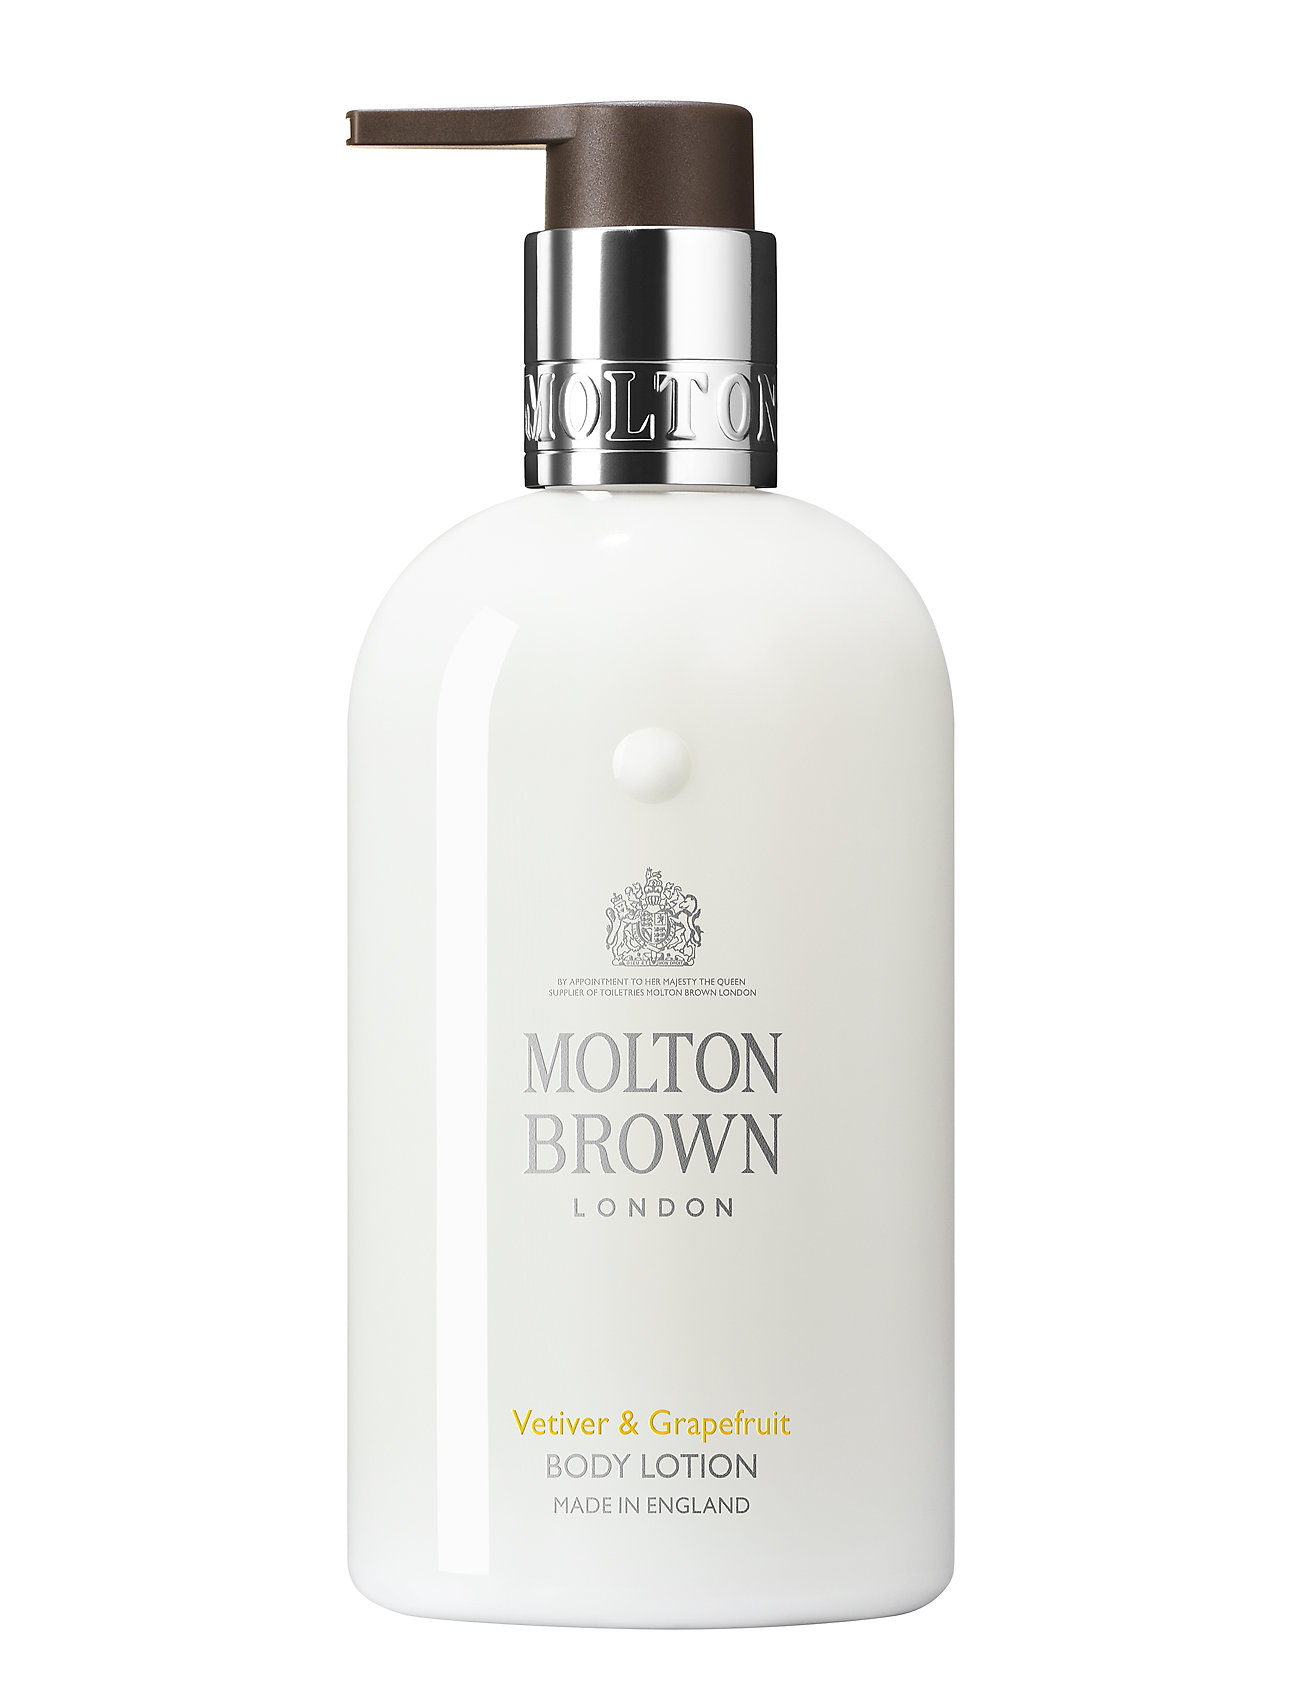 Image of Vetiver & Grapefruit Body Lotion Body Lotion Hudcreme Nude Molton Brown (3277932199)